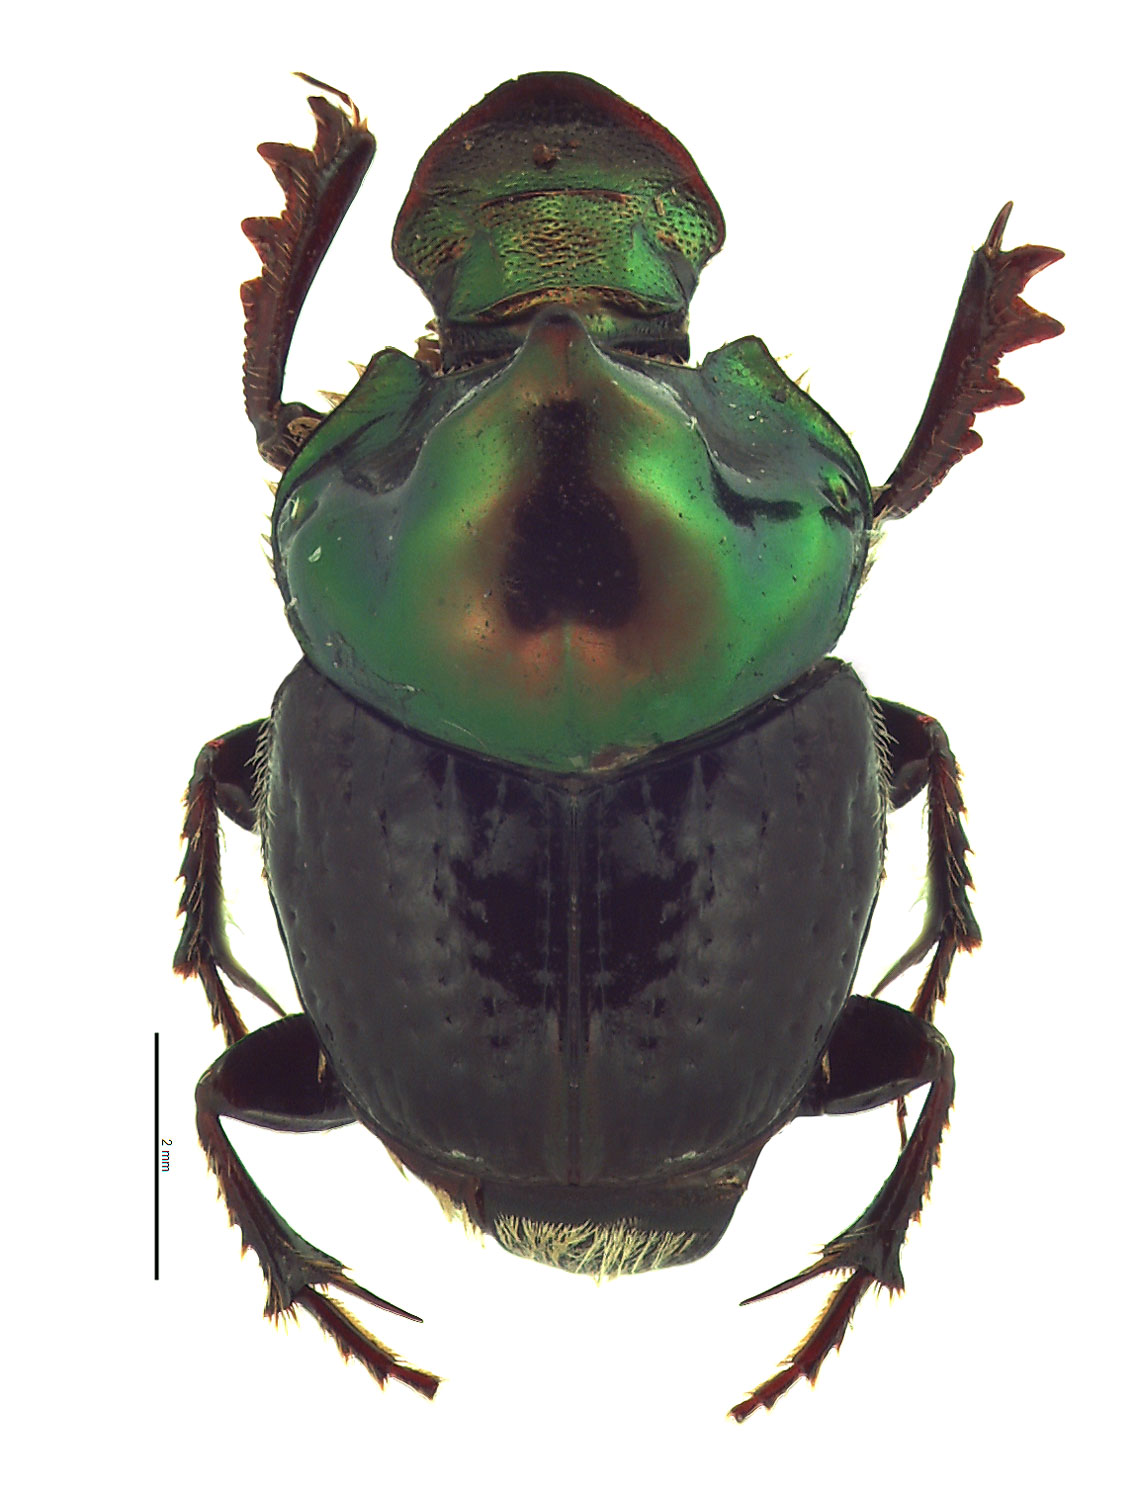 Onthophagus cuniculus male; photo by E.L. Engasser